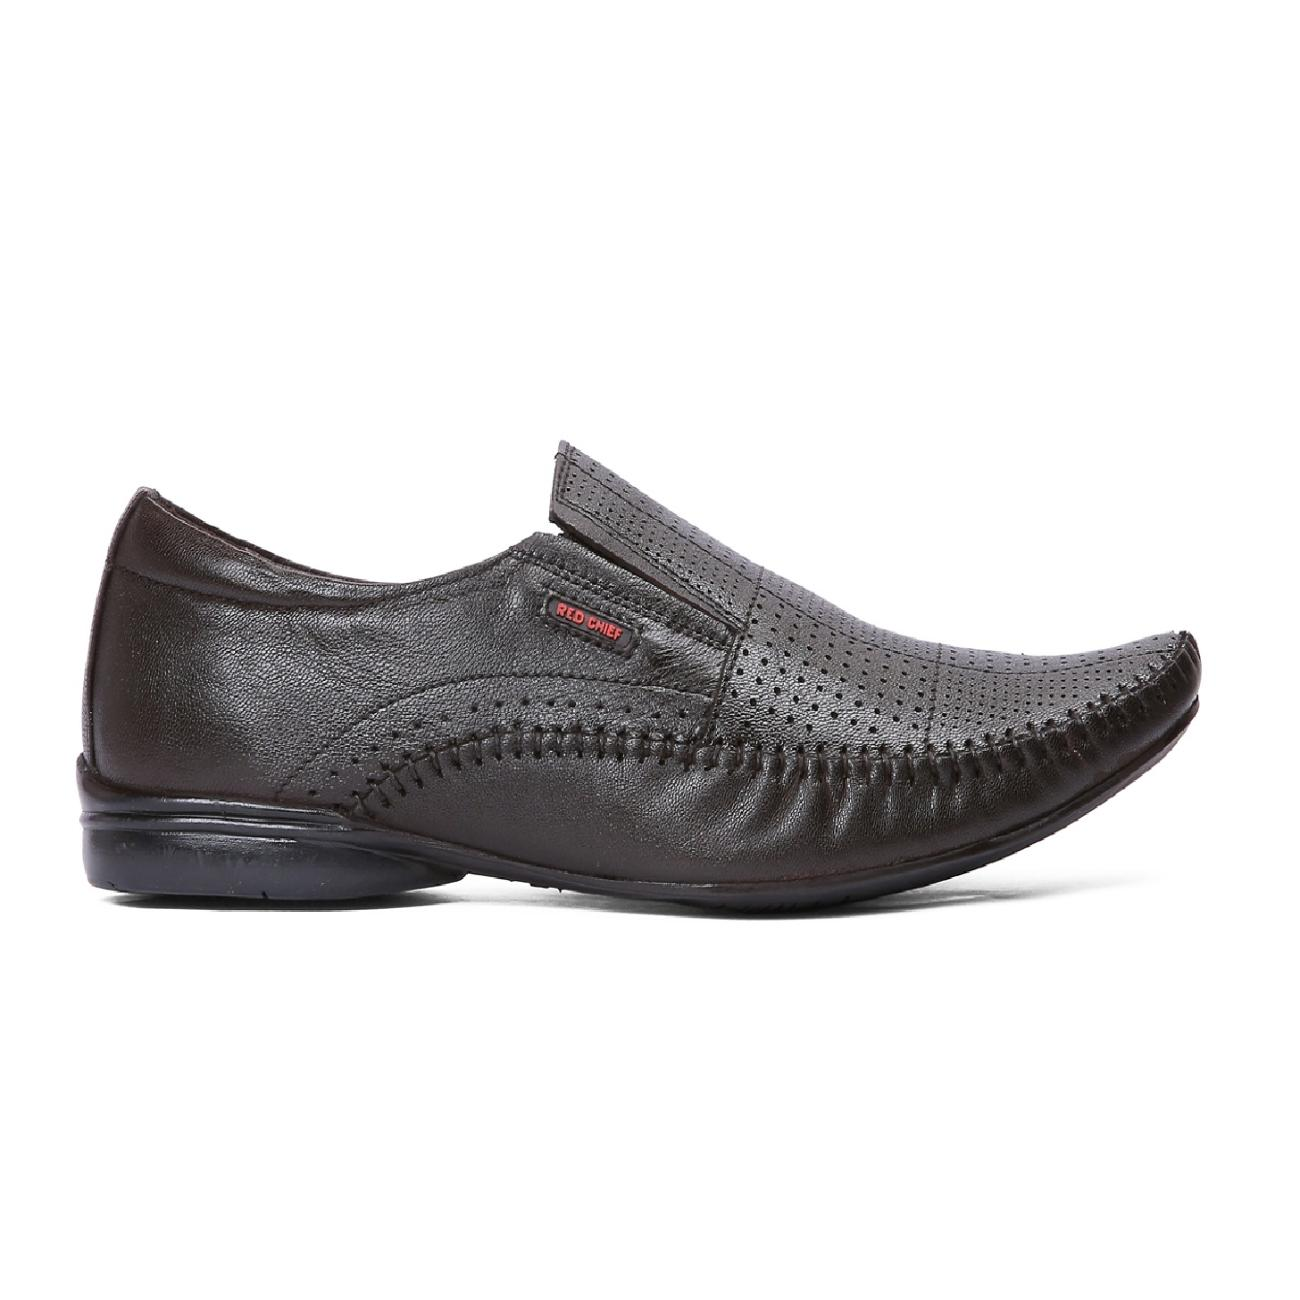 buy brown leather slip-on formal shoes side view_1